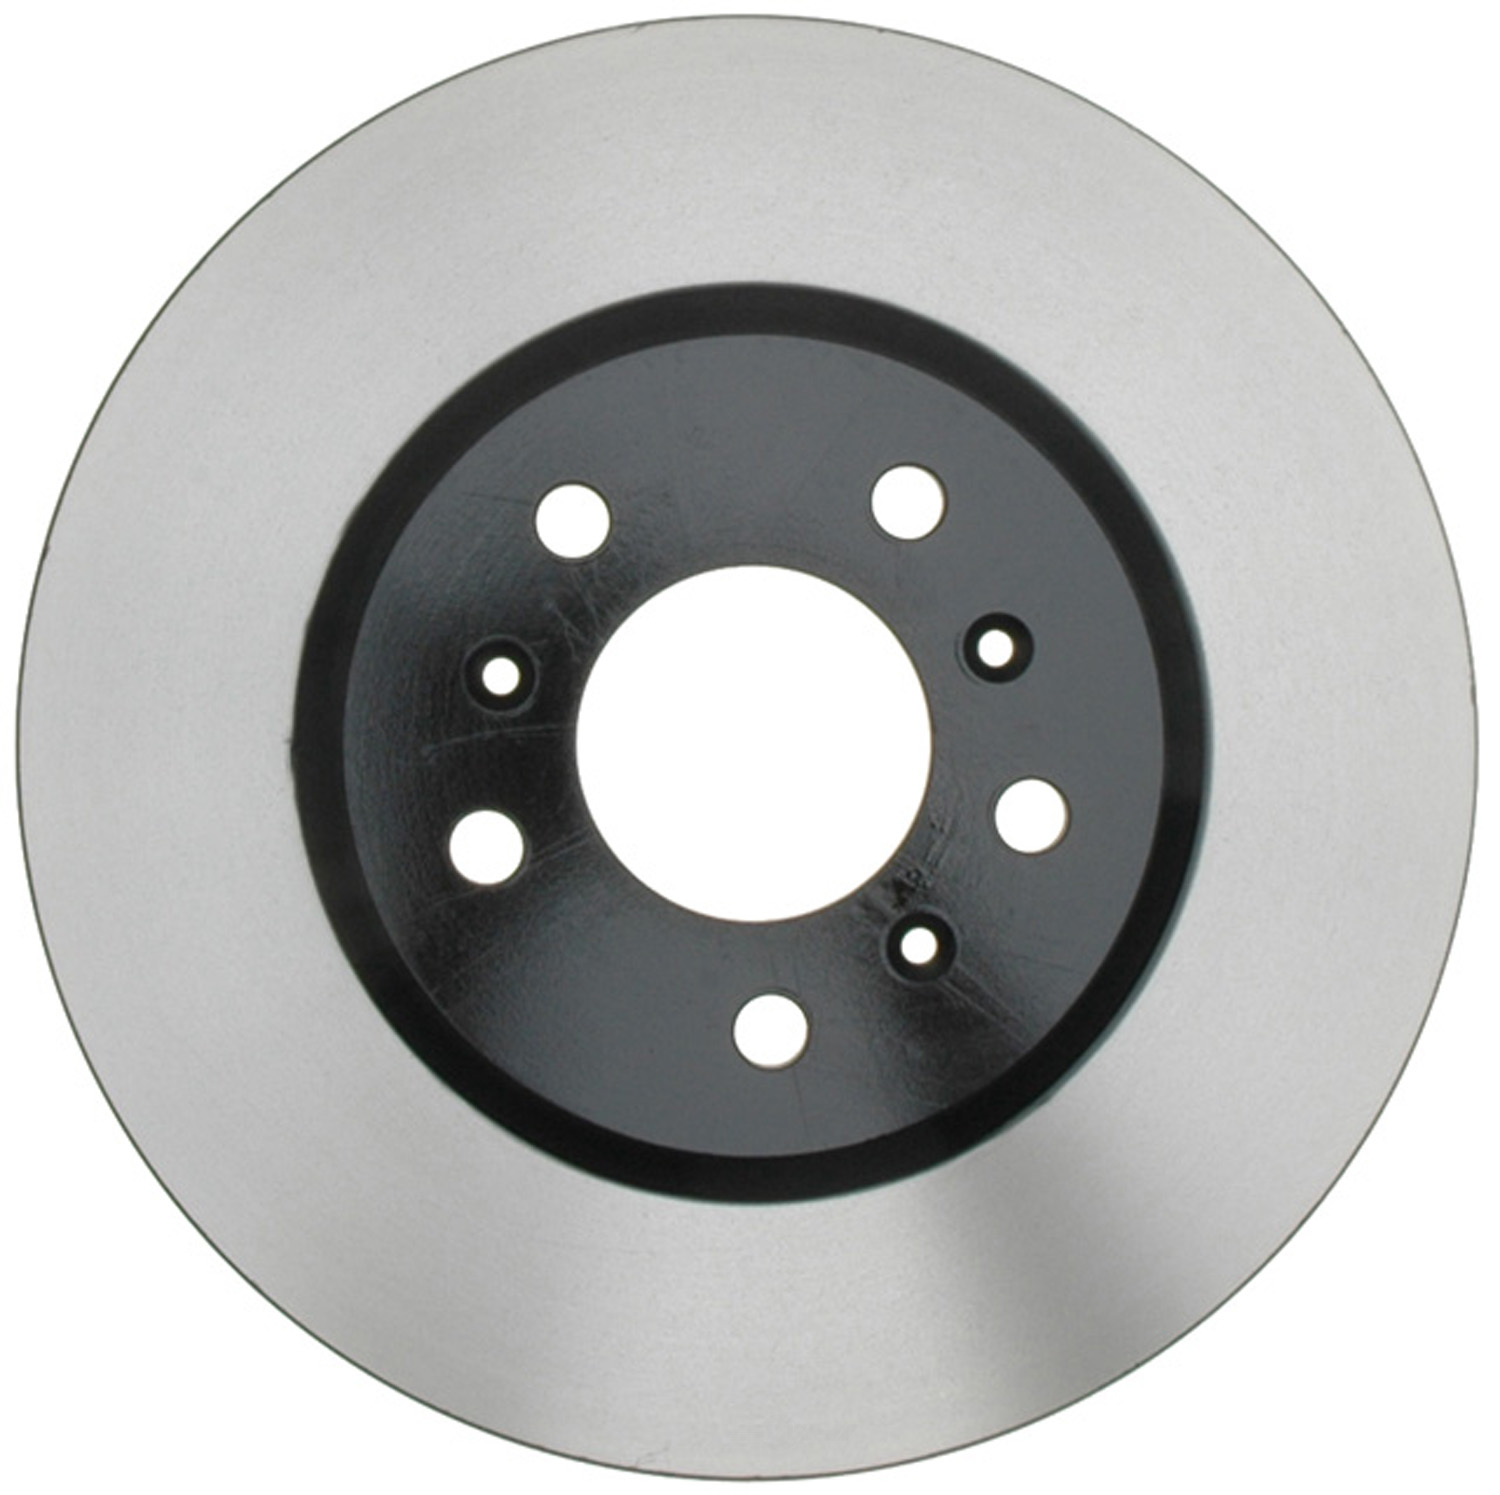 ACDELCO PROFESSIONAL BRAKES - Disc Brake Rotor - ADU 18A2322